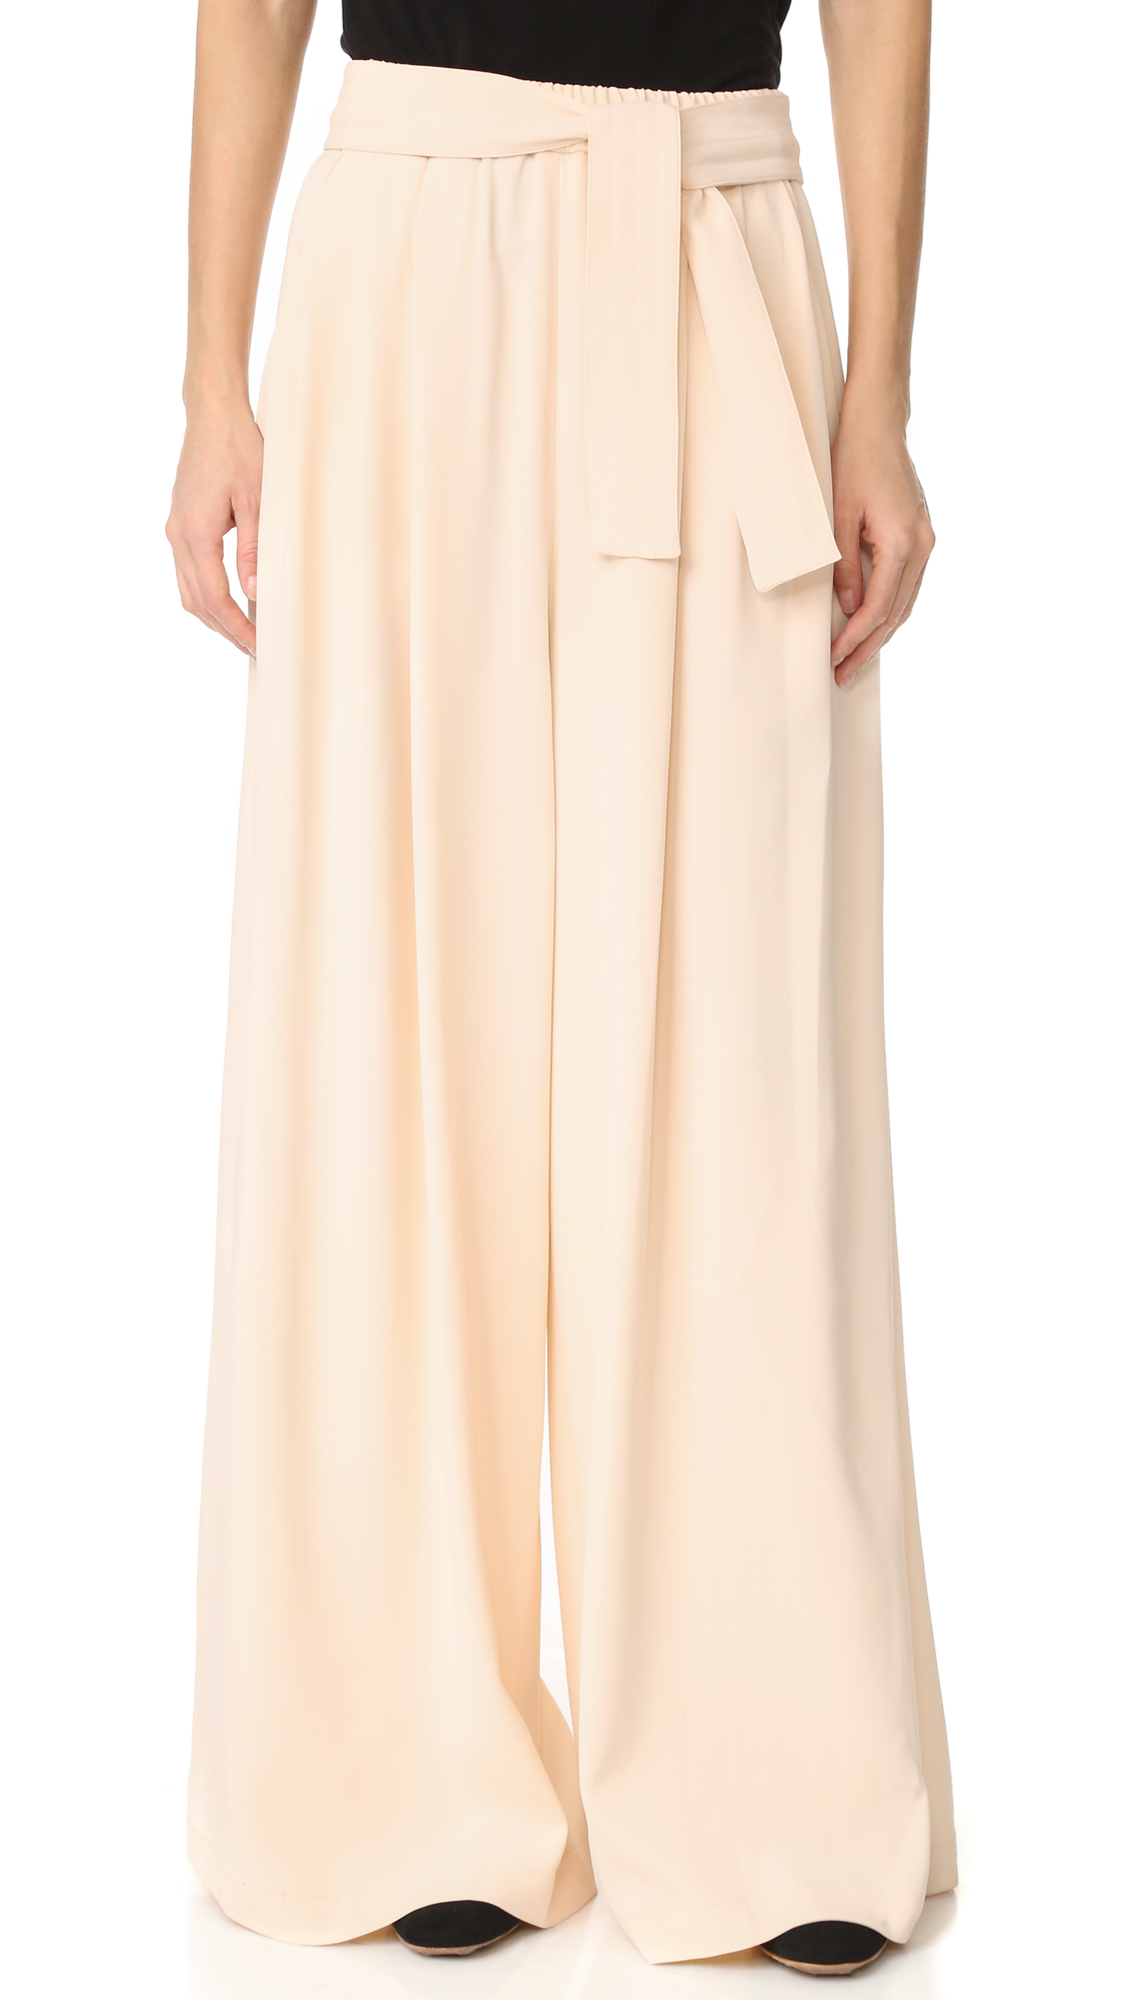 Pleated Tome wide leg pants with an effortless drape. Slant front pockets and patch back pockets. Smocked elastic waist. Optional, topstitched belt. Fabric: Crepe. 70% viscose/26% acetate/4% elastane. Dry clean. Made in the USA. Measurements Rise: 15.75in / 40